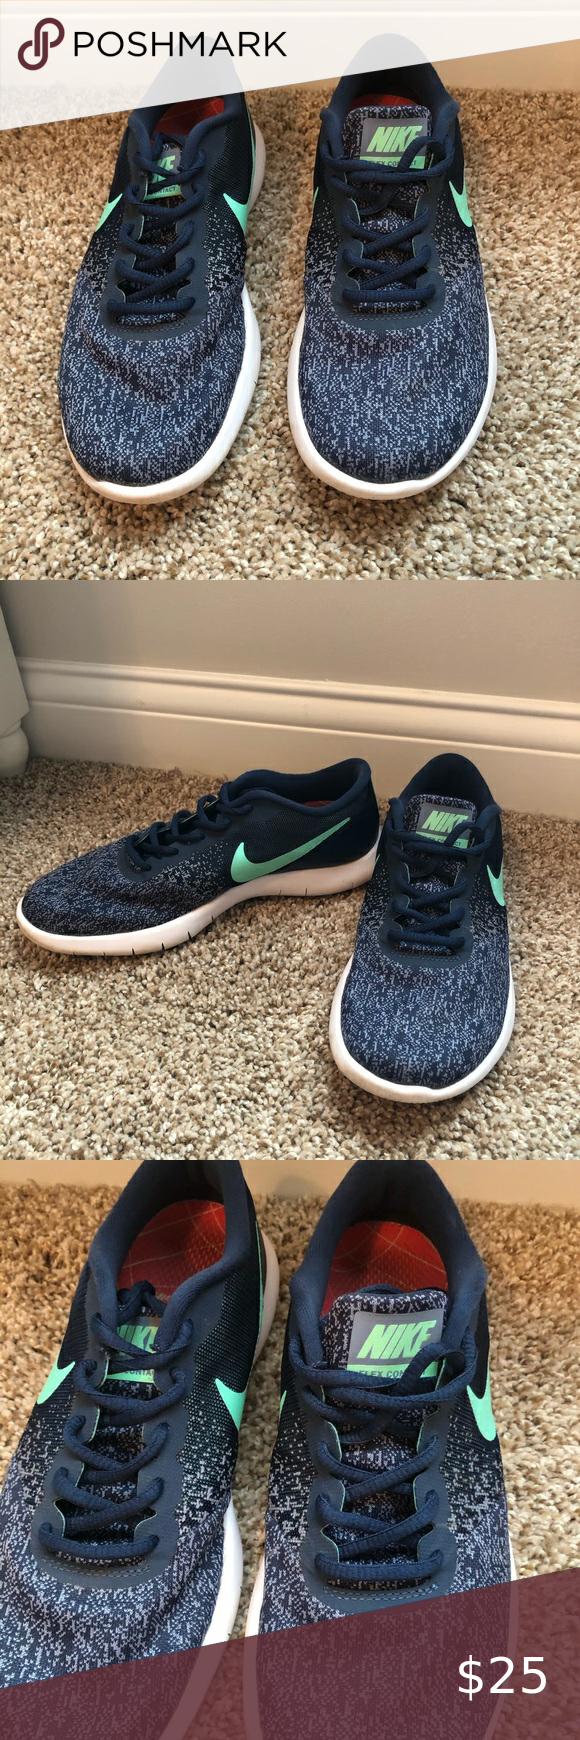 Conquistar antártico Afirmar  Nike Flex Contact Shoes 👢👠👟SHOE DROP👟👠👢 Item: Flex contact running  shoes in navy/green (come with Dr. Scholl's insoles) Size: women… in 2020 | Nike  flex, Shoes, Nike